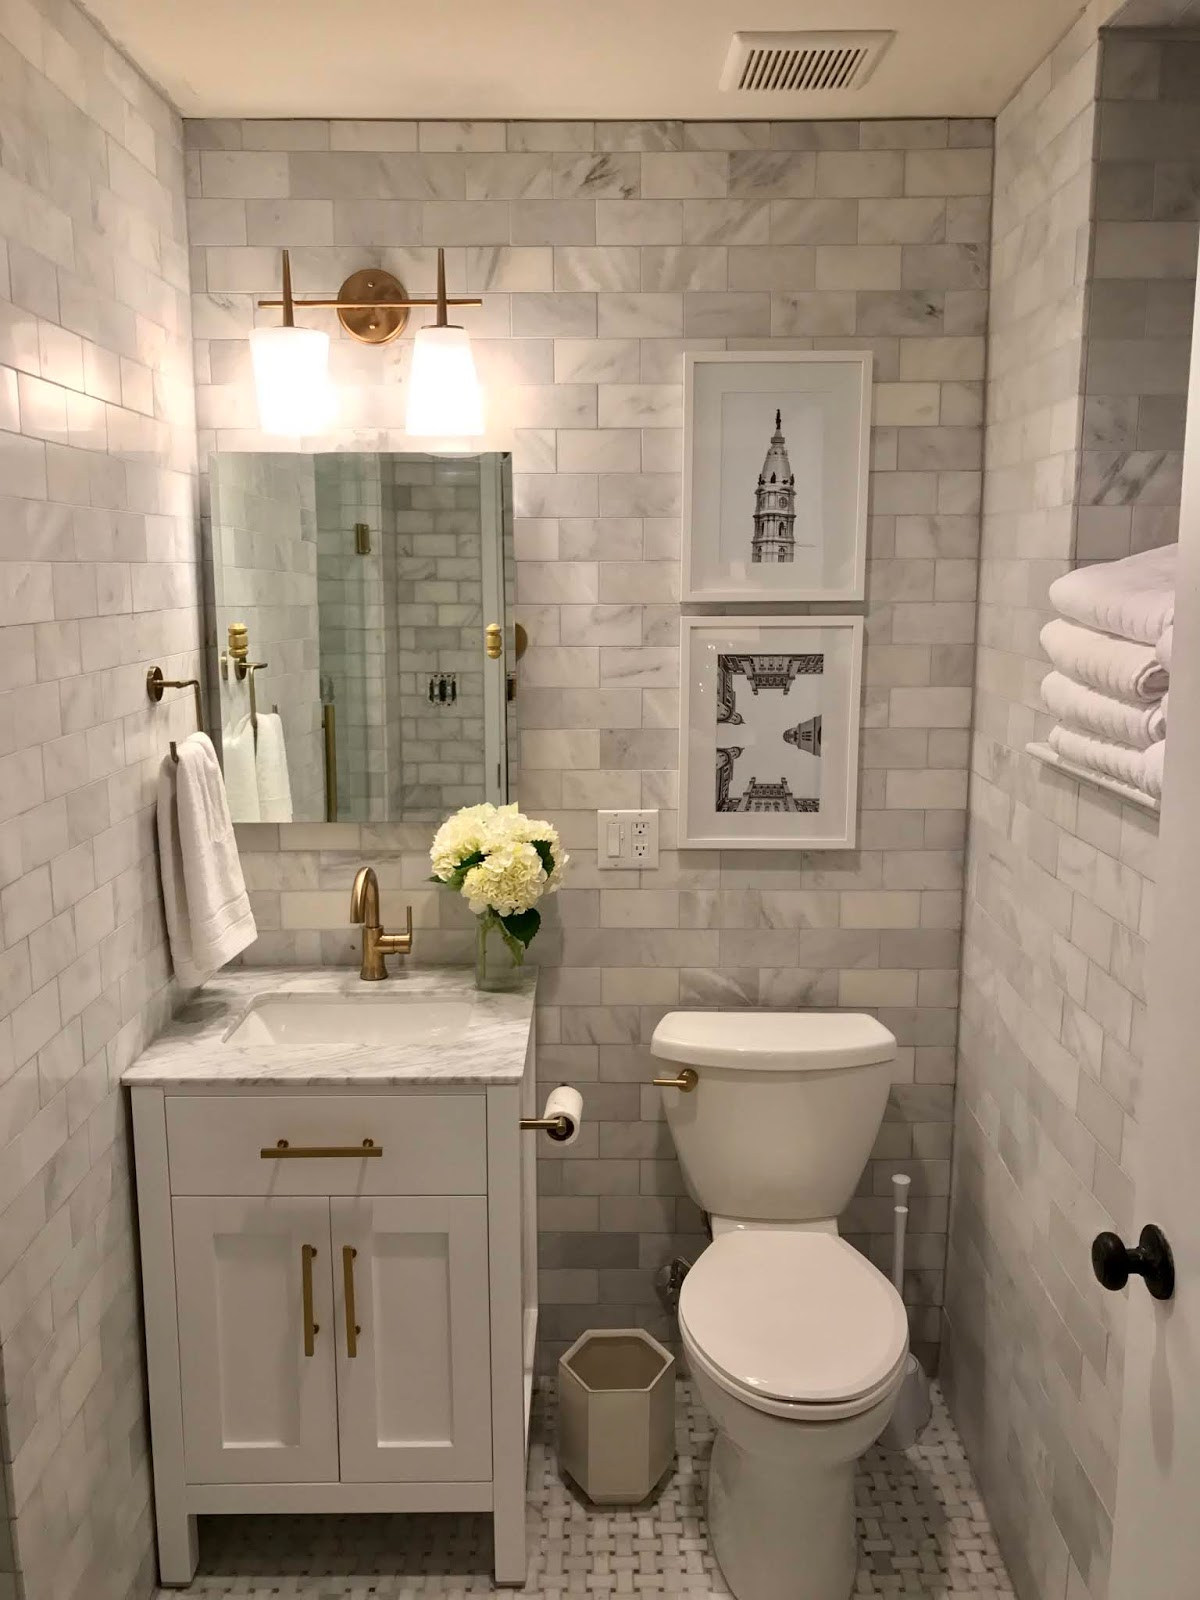 Bathroom Home Interior Design Bathroom Remodel The First Tile Project For A New Home Owner